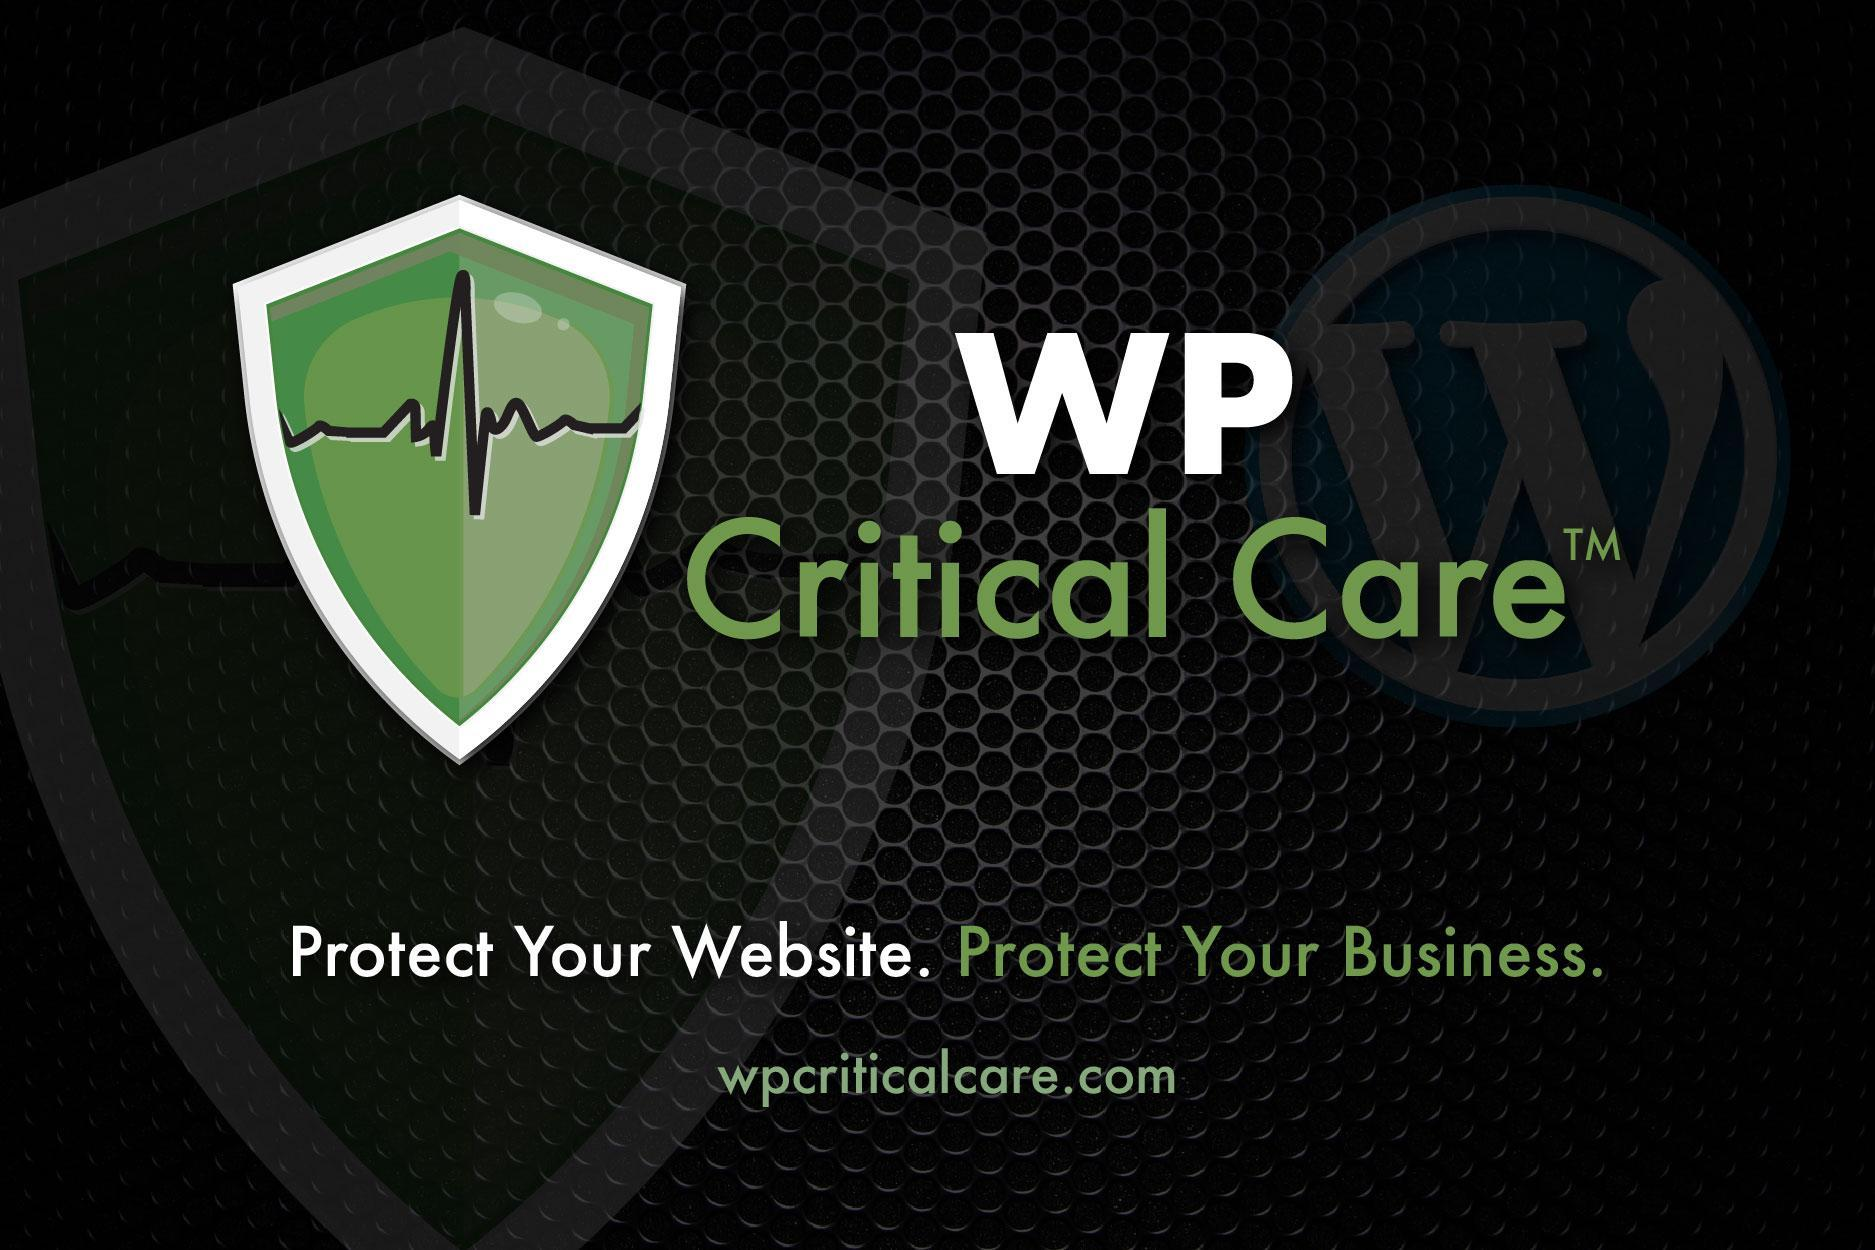 Array Digital launches WP Critical Care